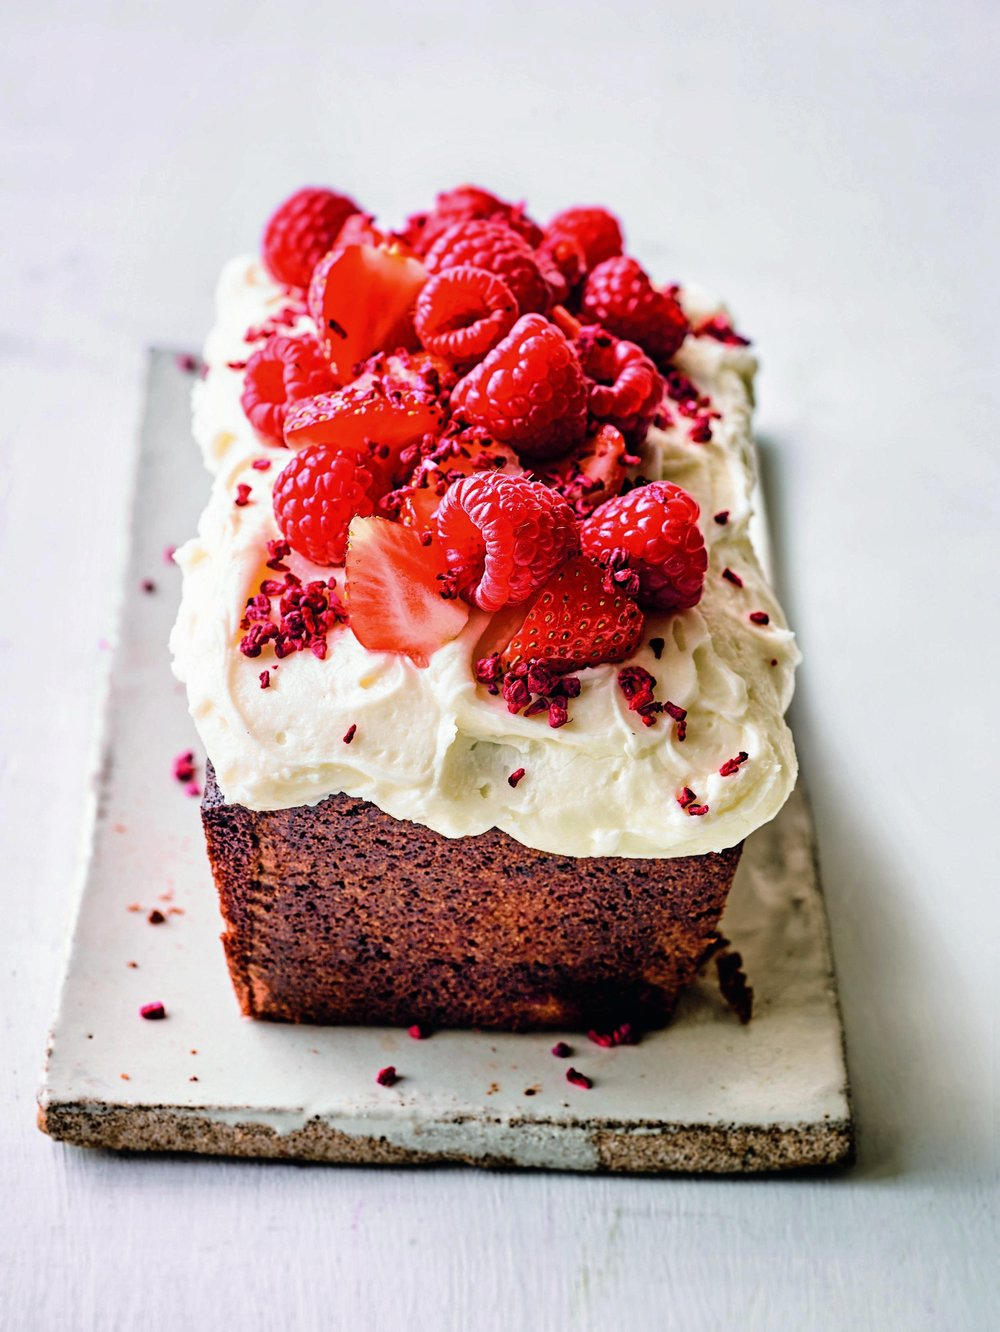 20170614_Waitrose Weekend_SR783_RT_PW_WK362_Martha Bakes_Yoghurt & Berry Loaf Cake_170994.jpg